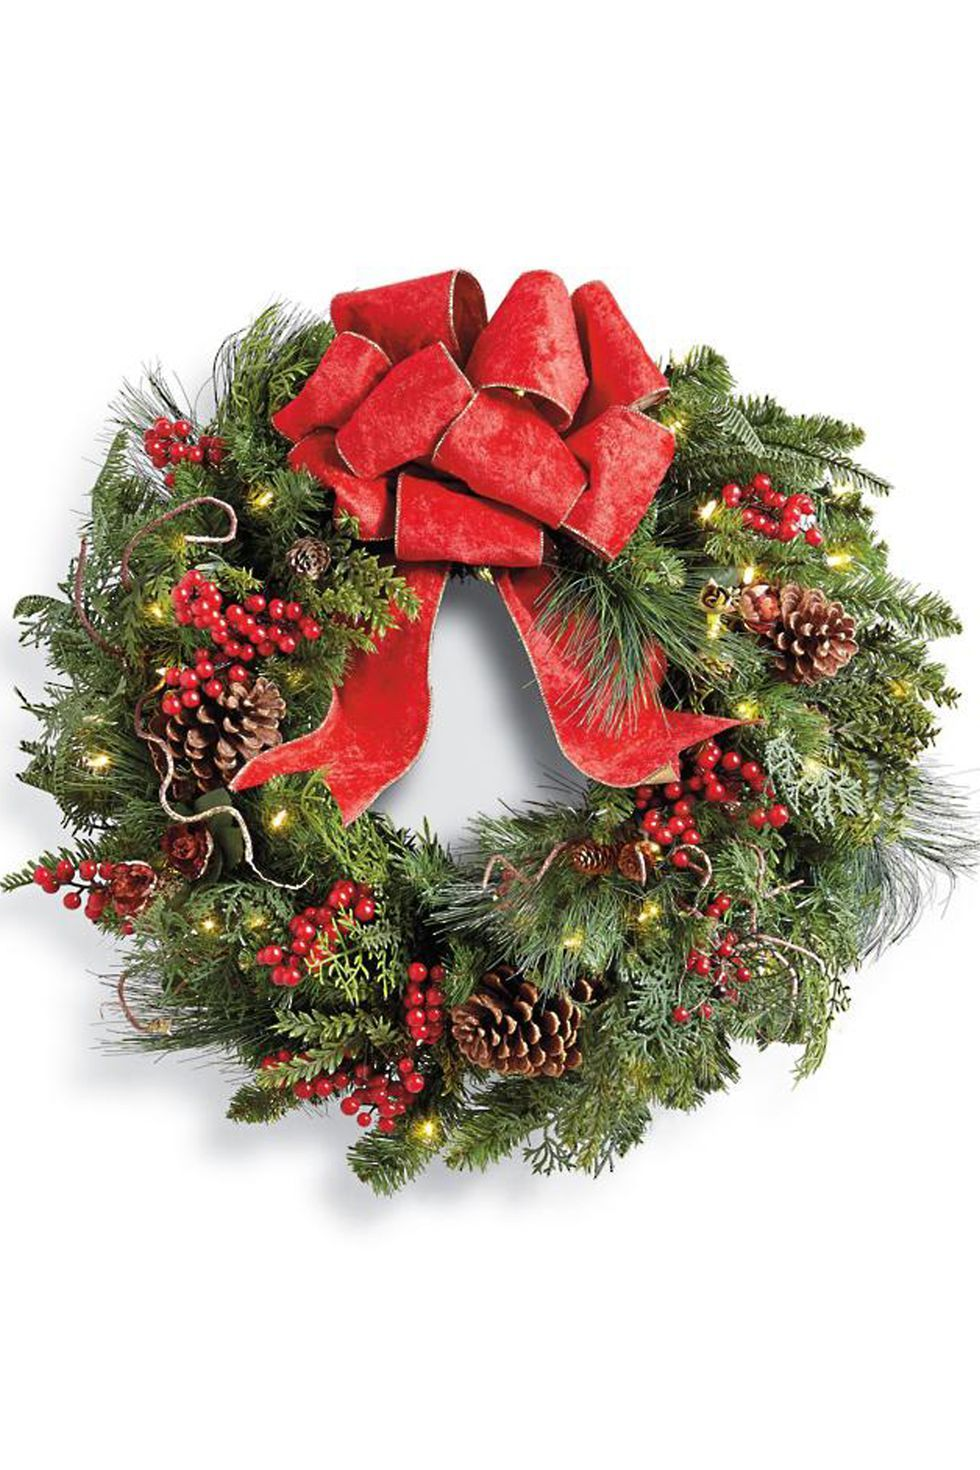 22 Elegant Christmas Wreaths to Buy Online 2018 - Best Holiday ...